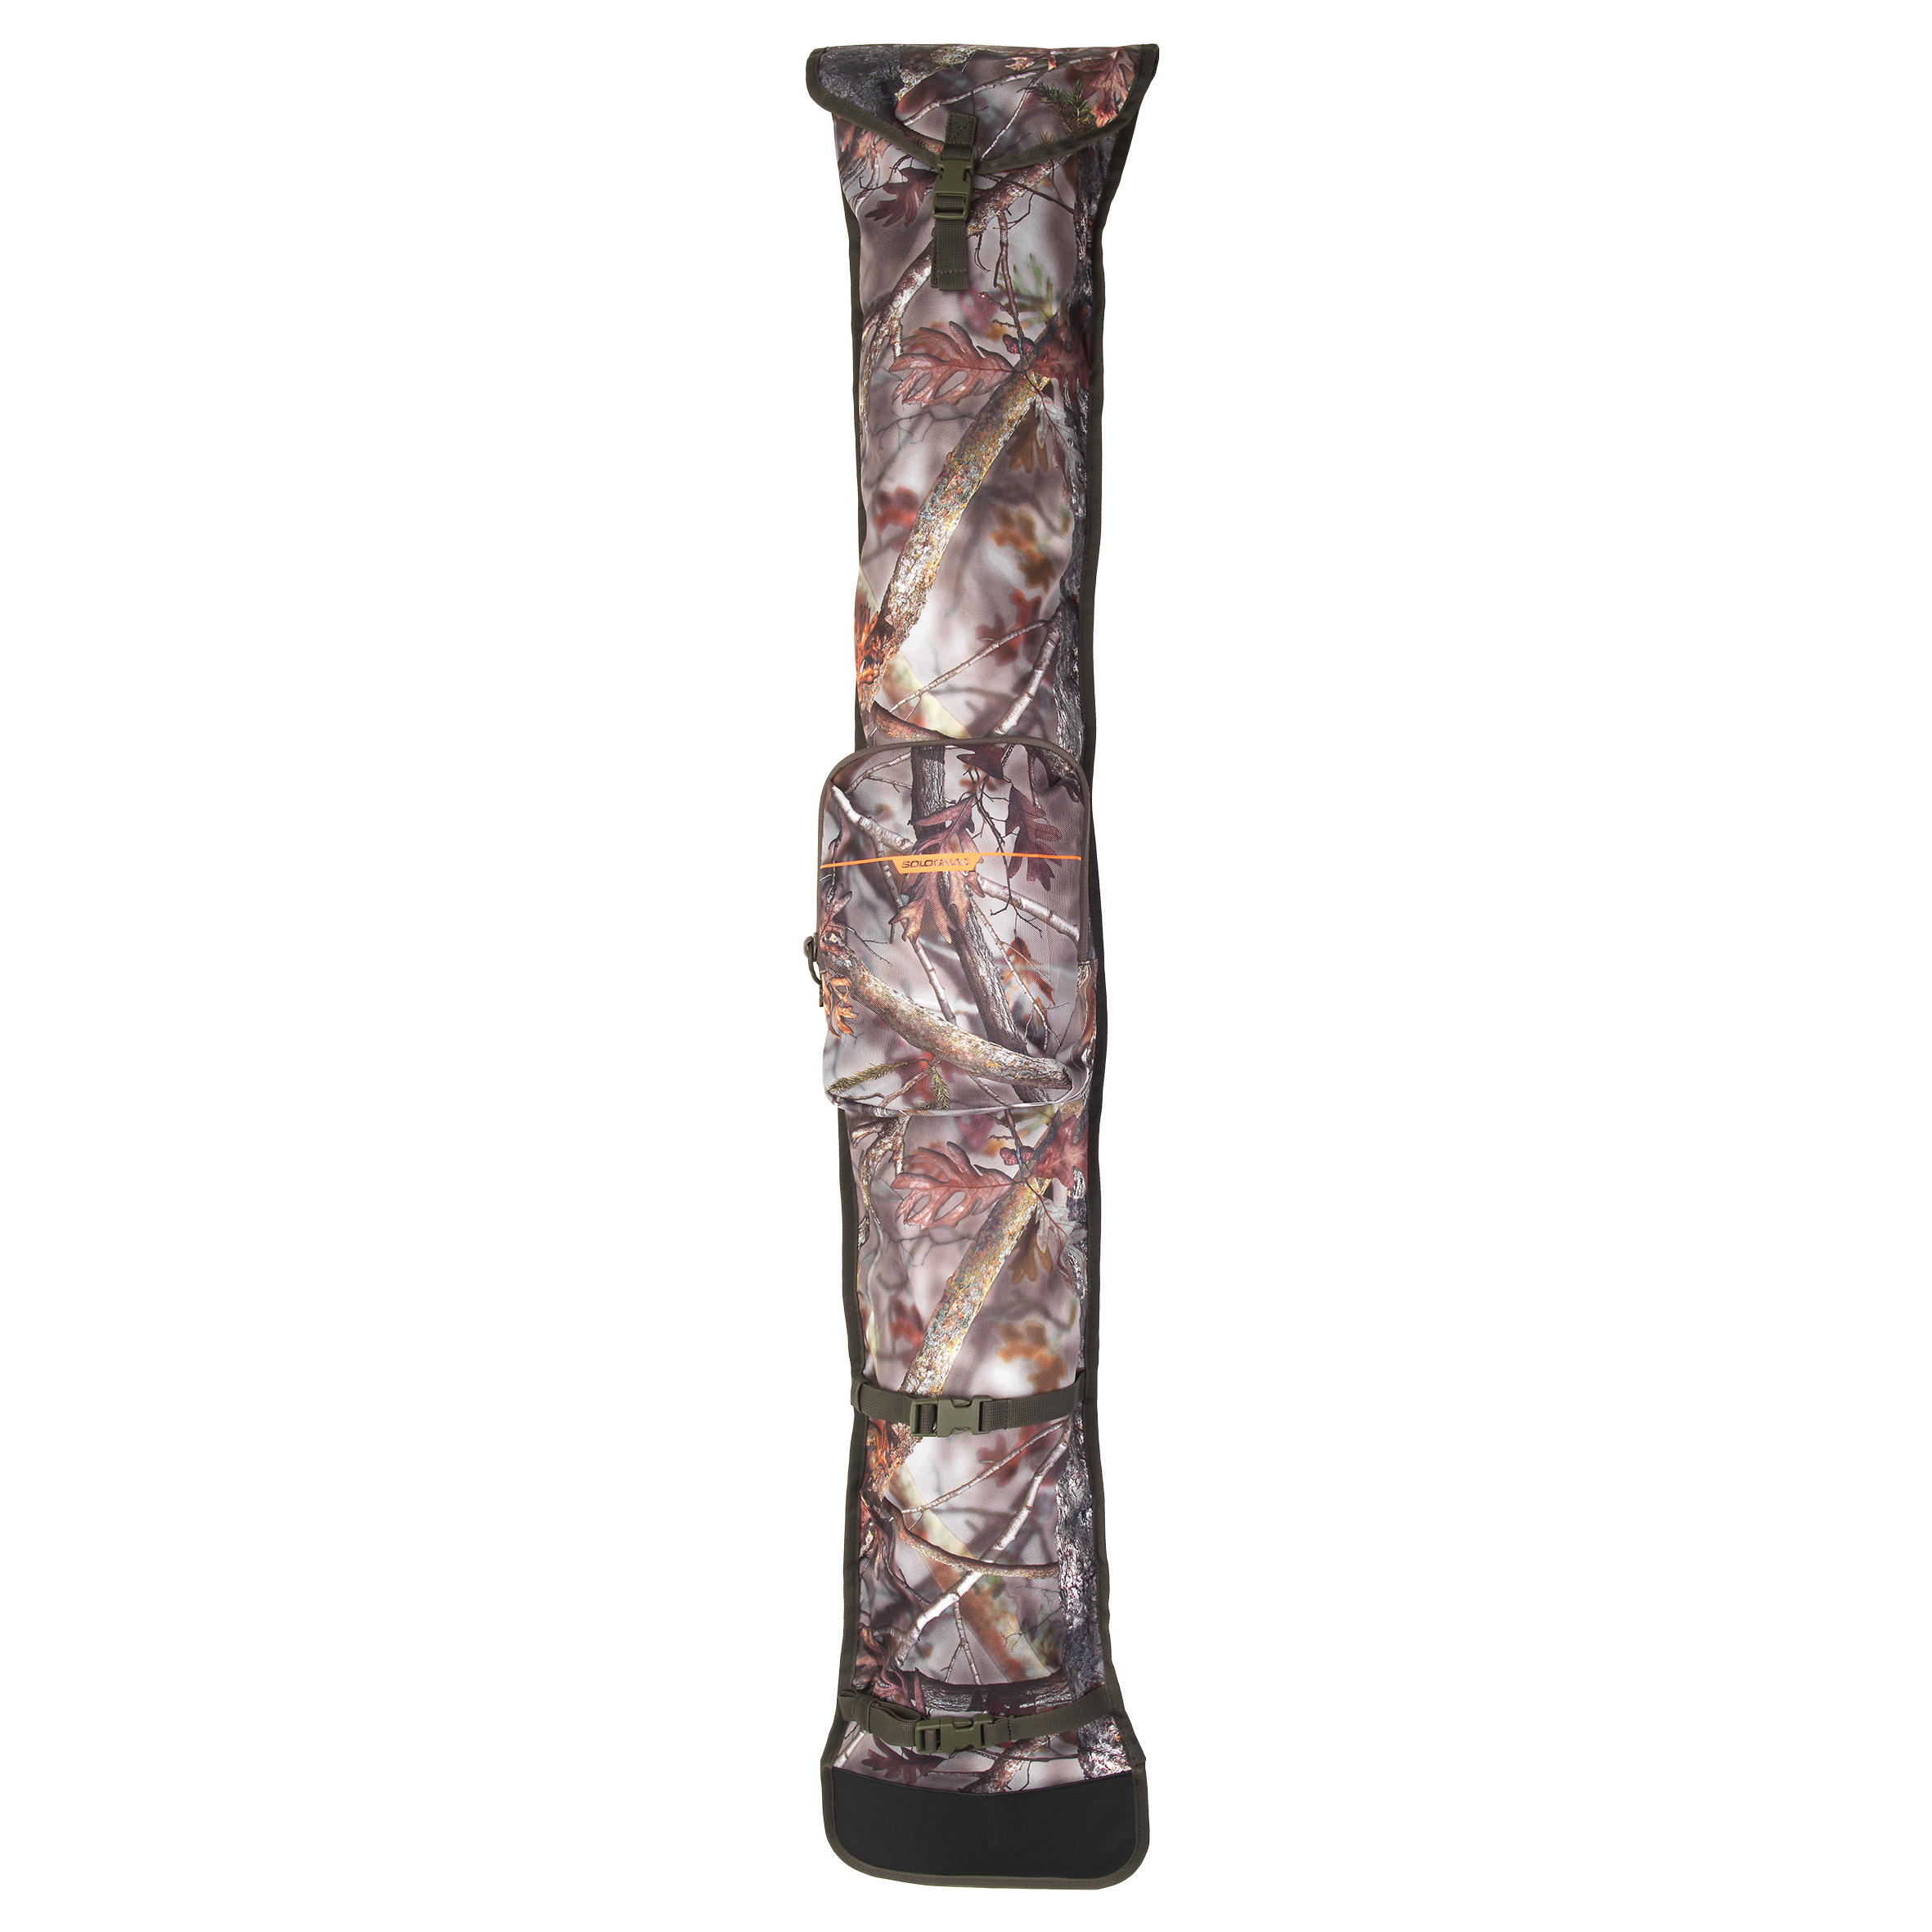 SAC CHASSE TRANSPORT PIQUETS CAMOUFLAGE